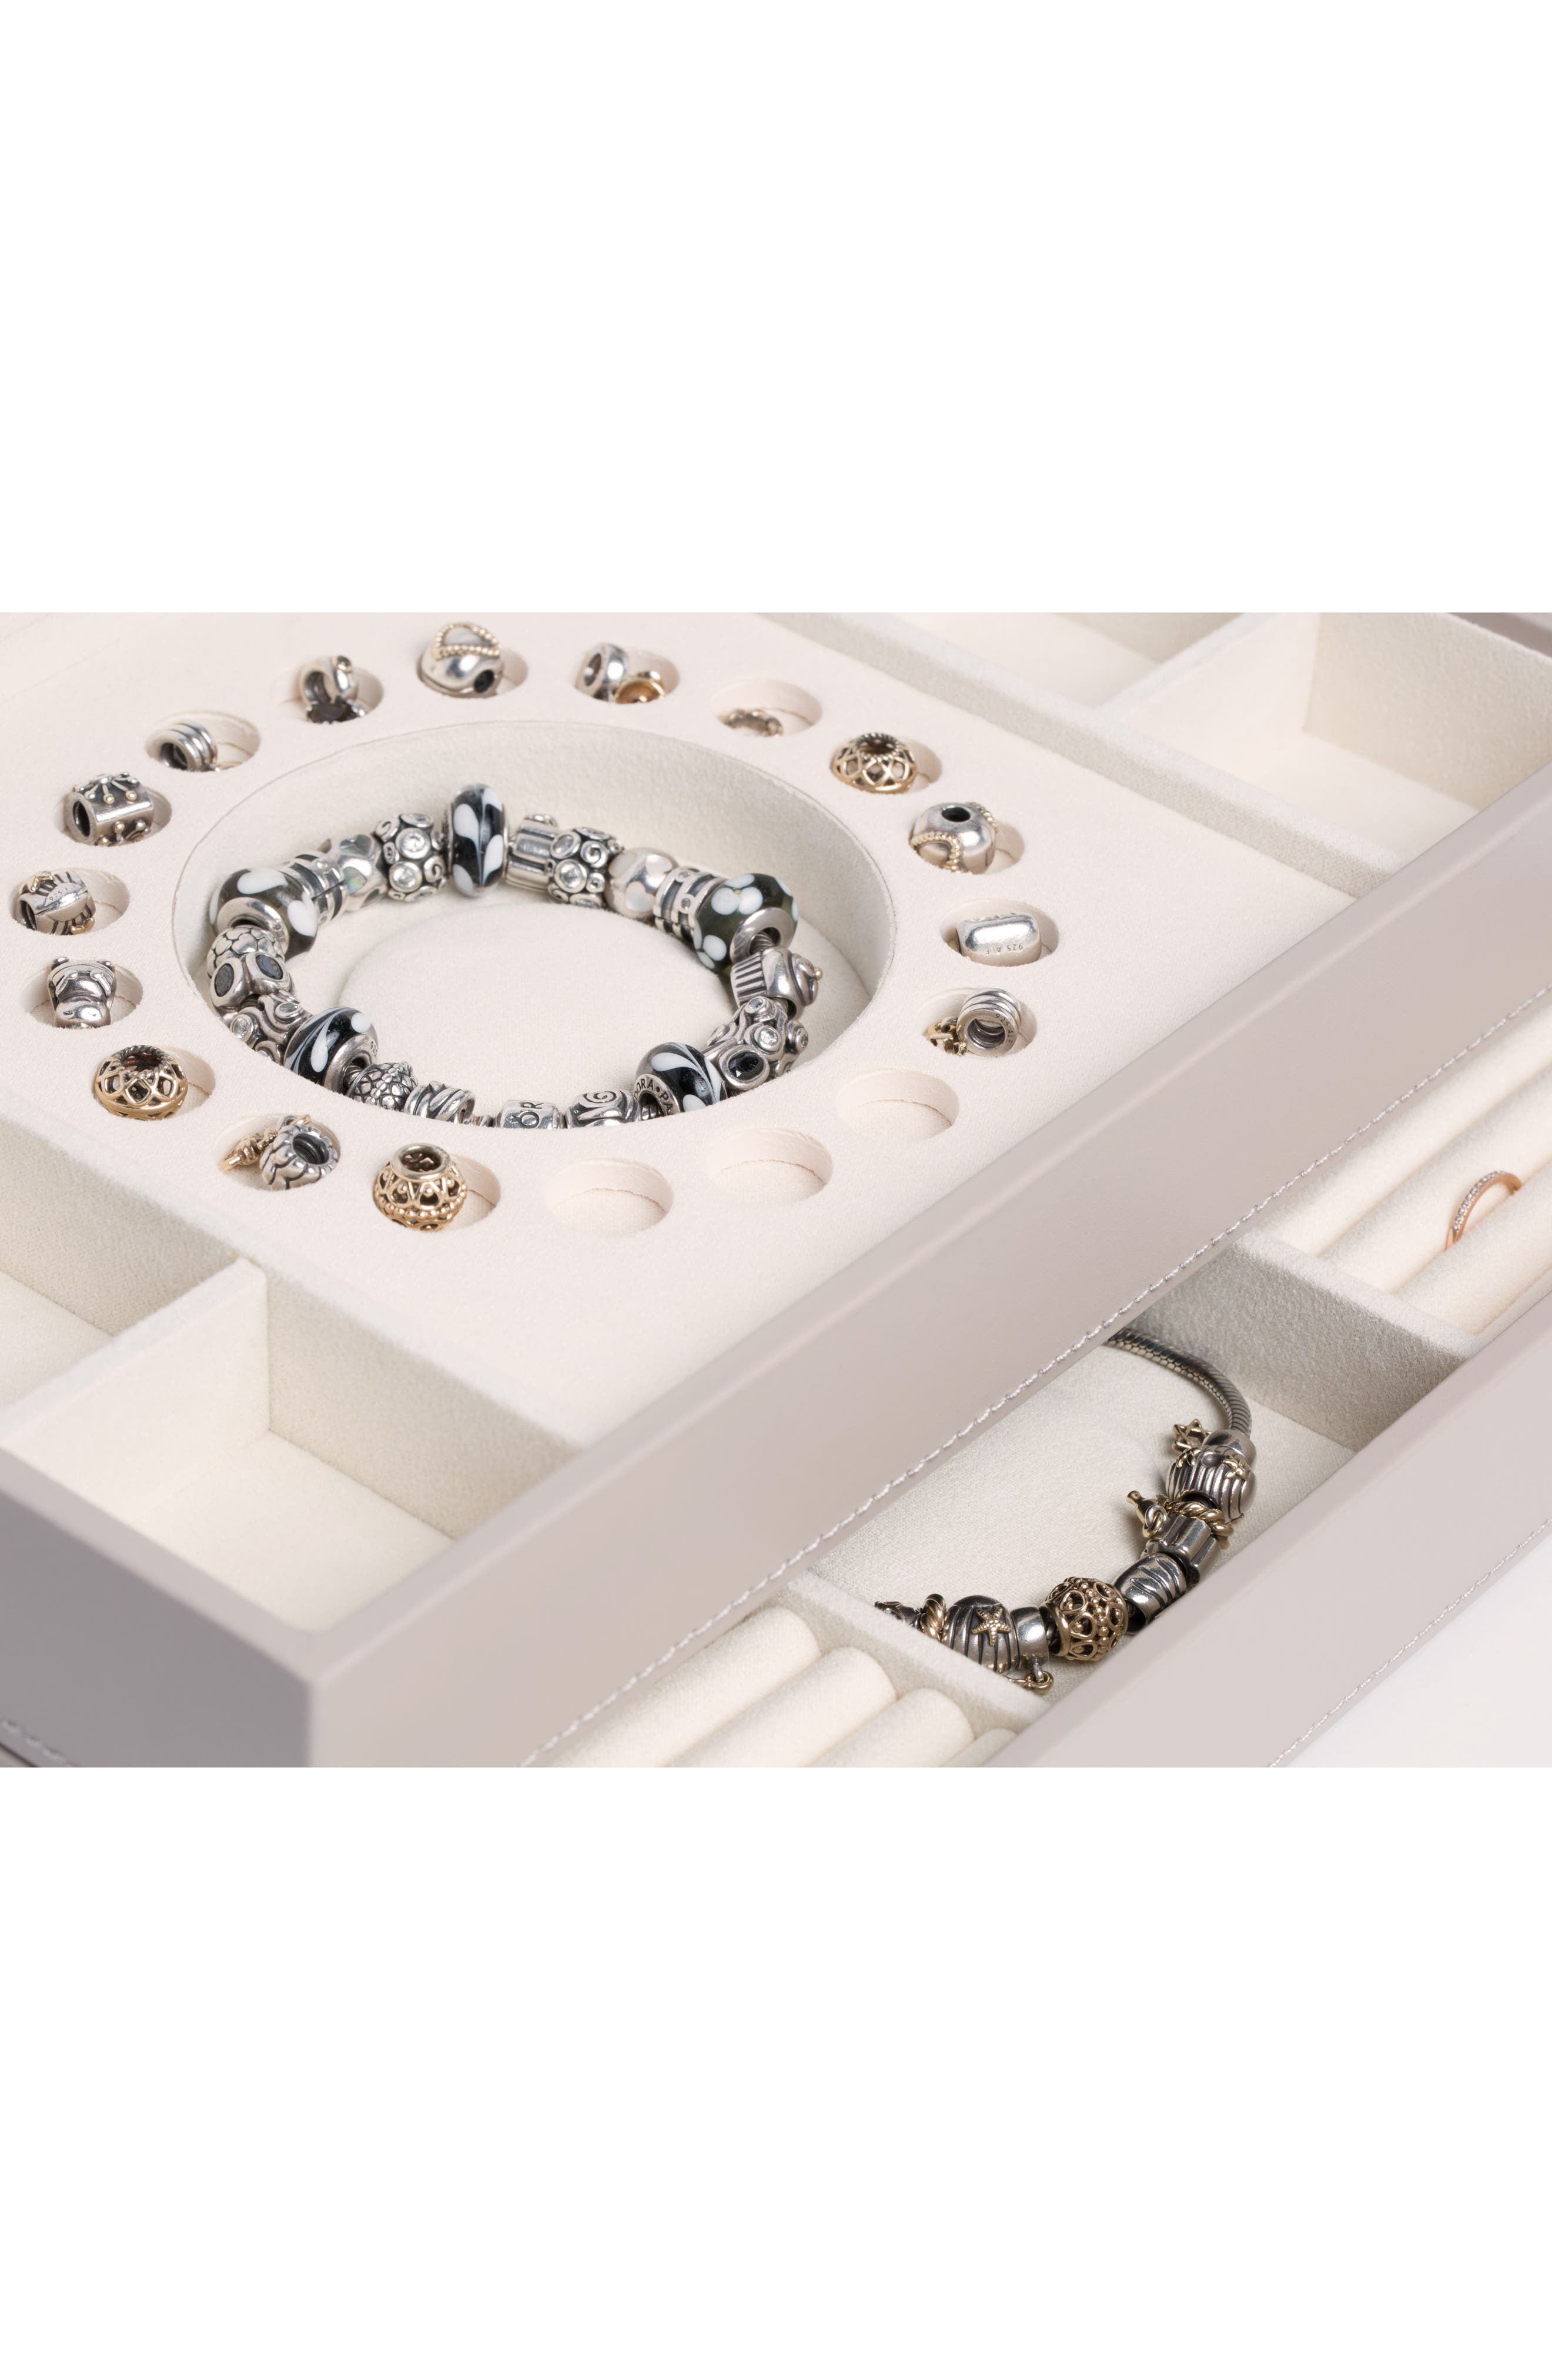 Sophia Stackable Jewelry Tray Set,                             Alternate thumbnail 9, color,                             Mink